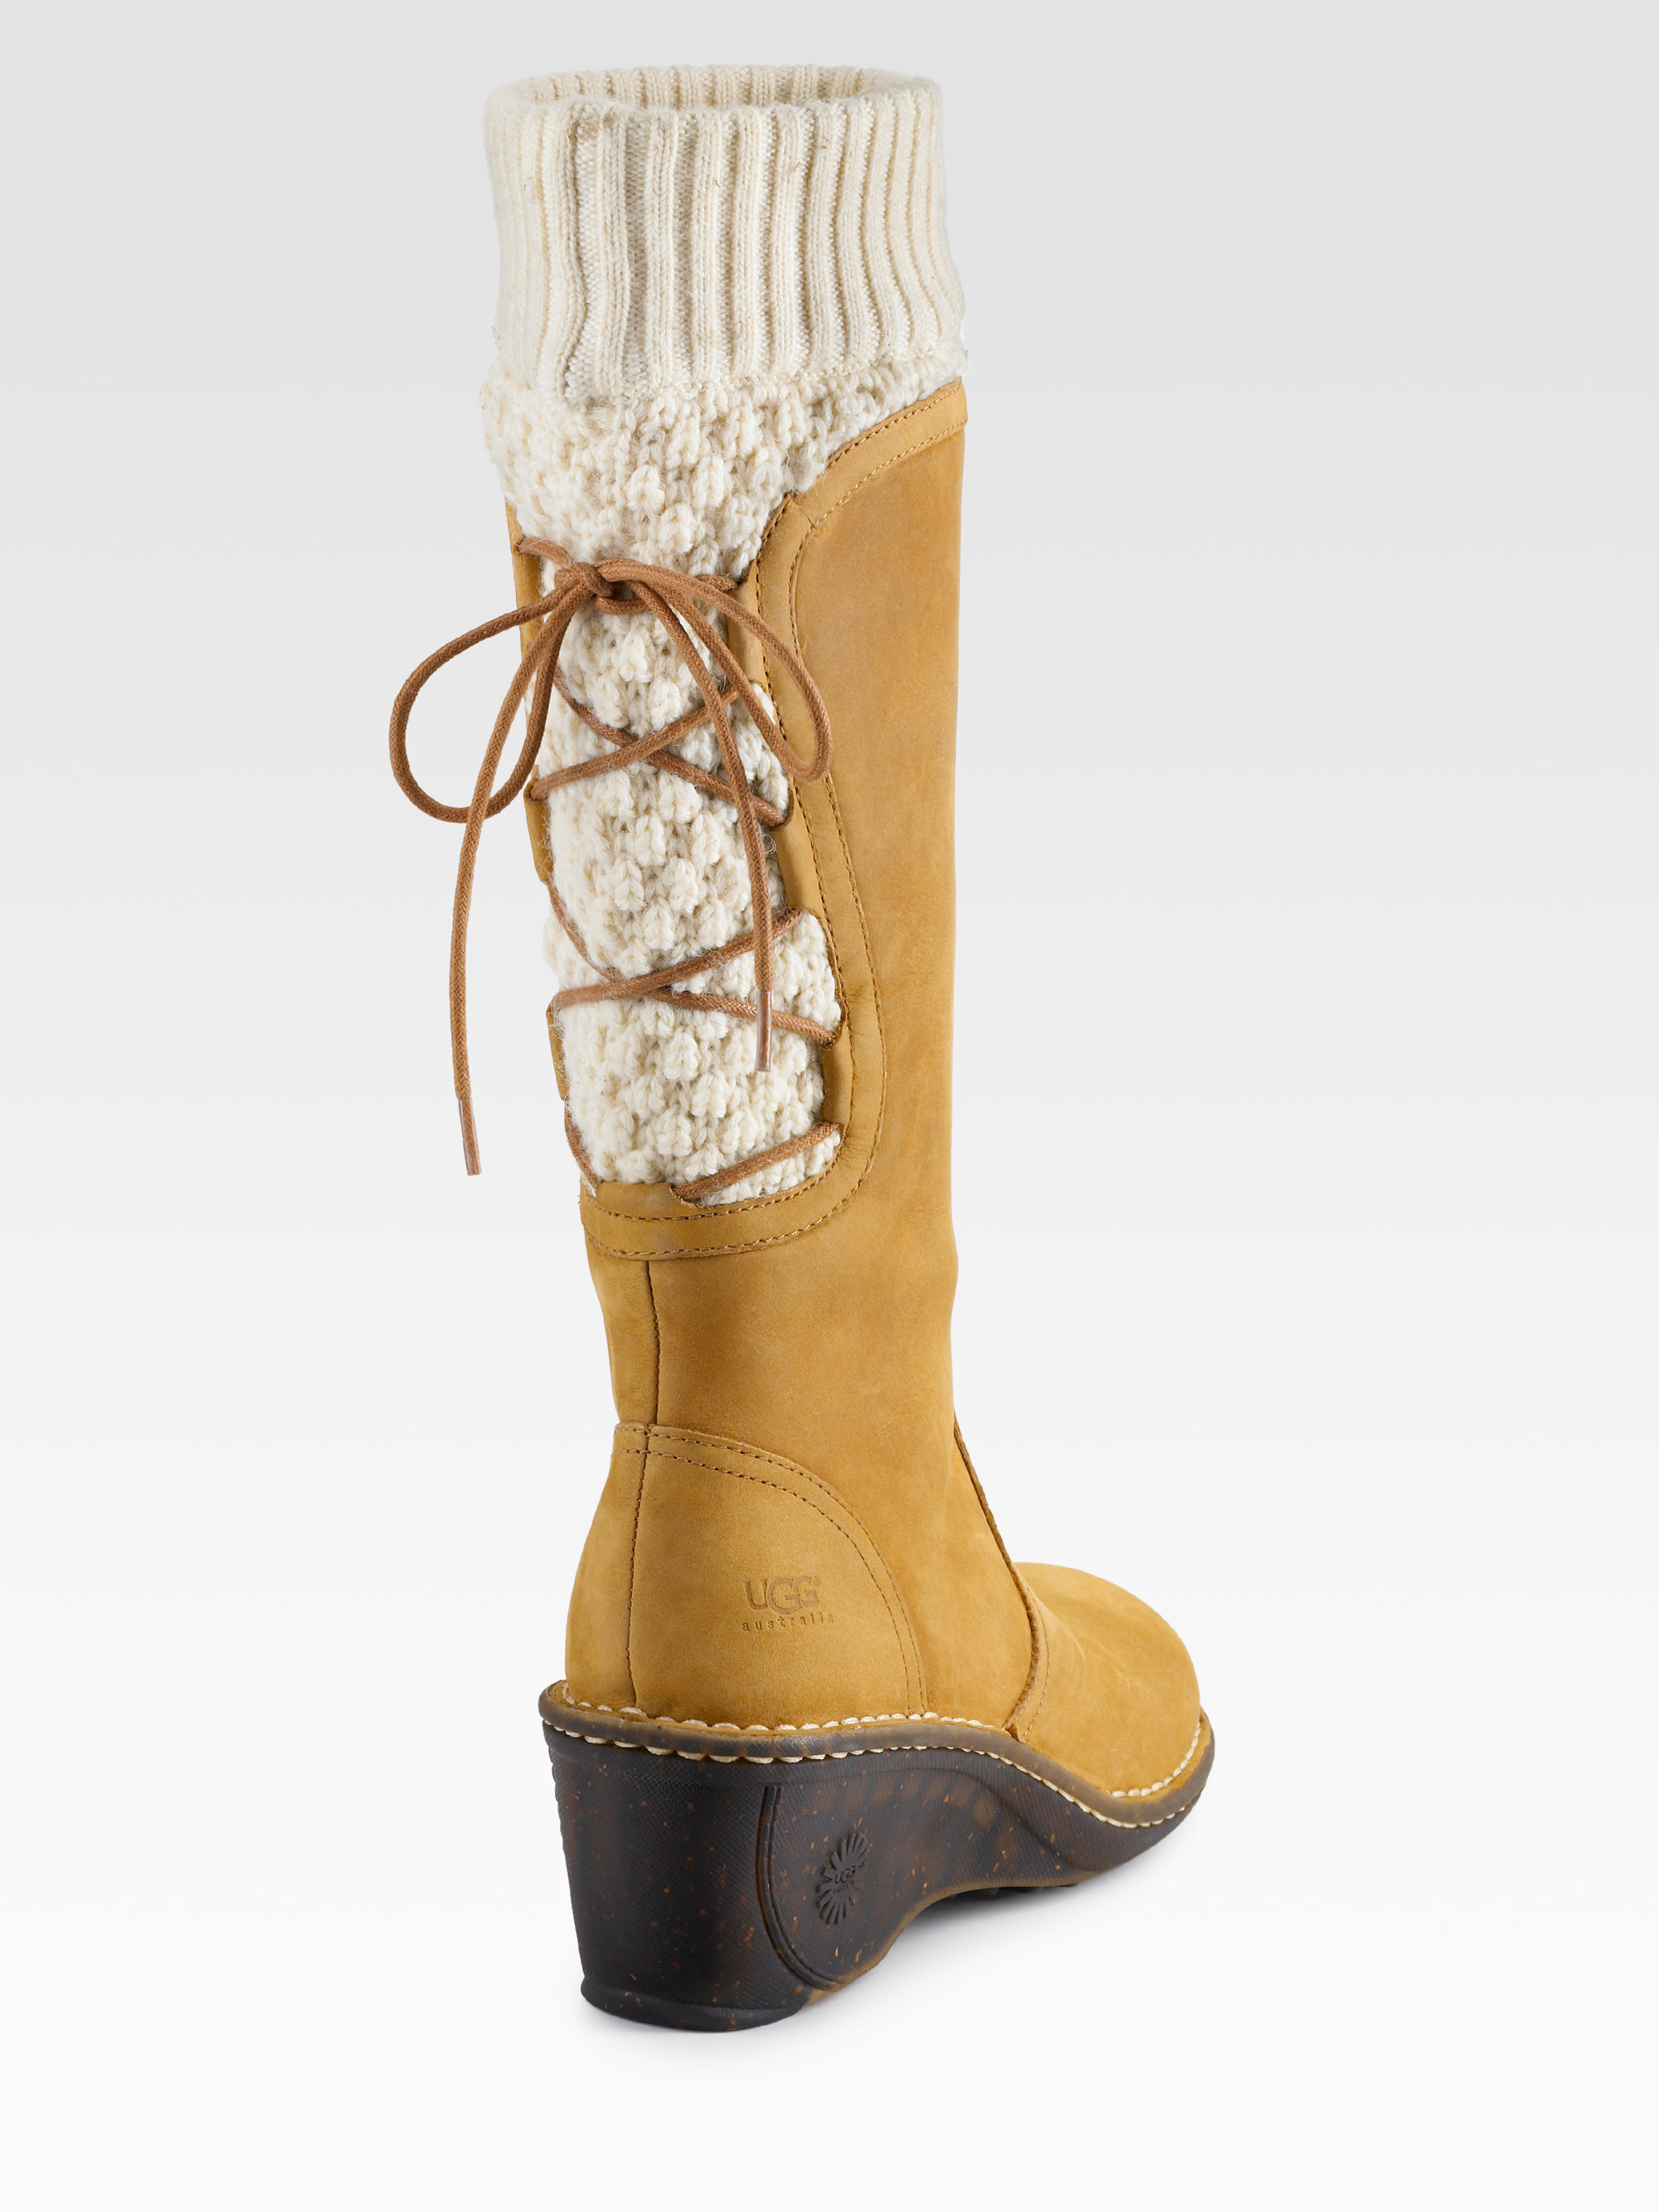 830de892a593 ... reduced lyst ugg skylair suede wedge boots in brown f3e3d ec426